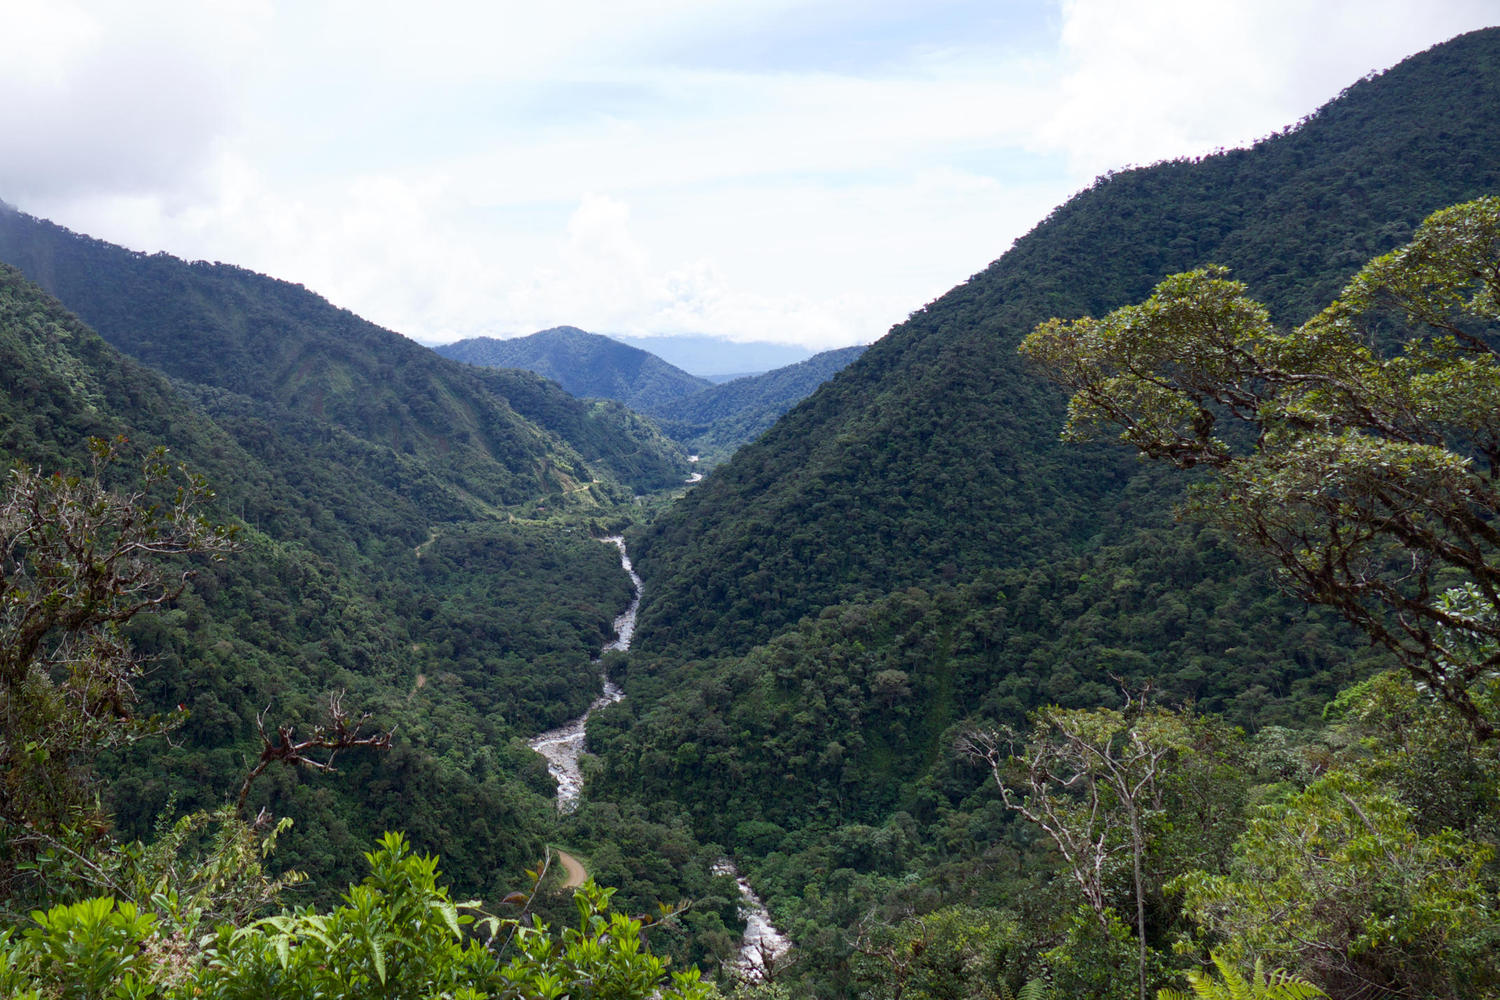 The road to Manu offers spectacular views across the cloud forest